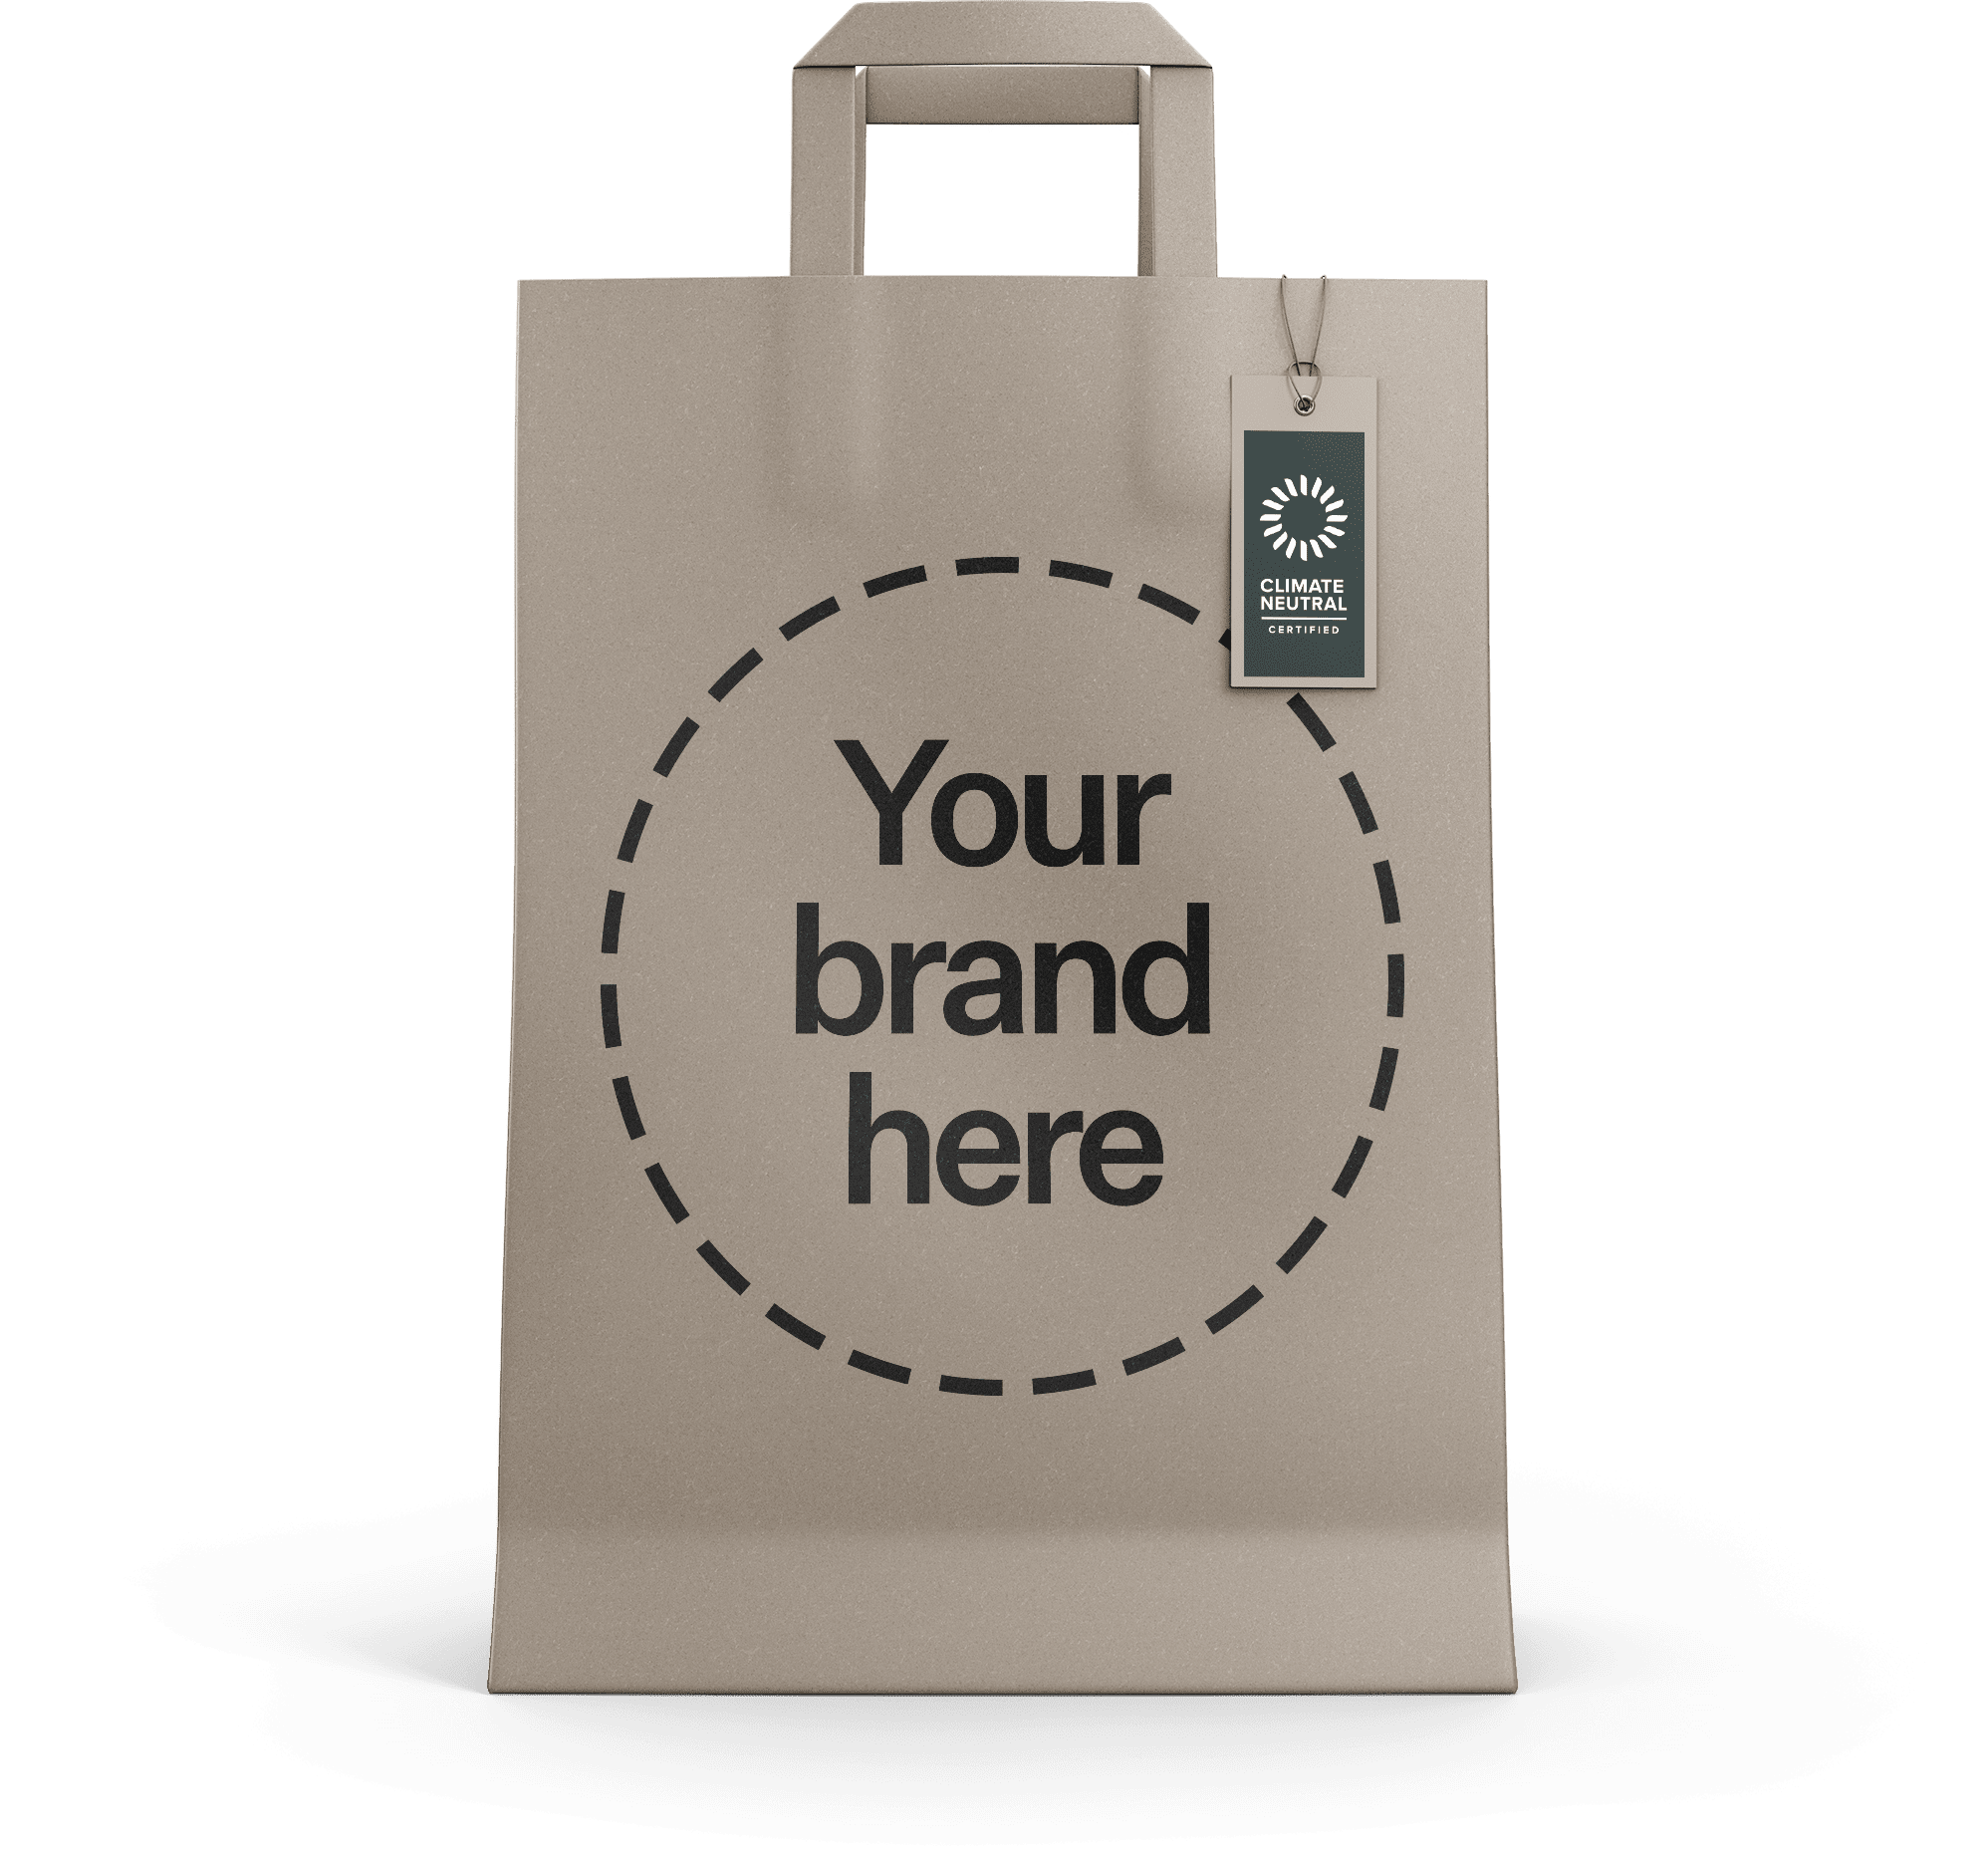 "Mockup of a paper bag with the climate neutral certified label and a message reading ""Your brand here""."